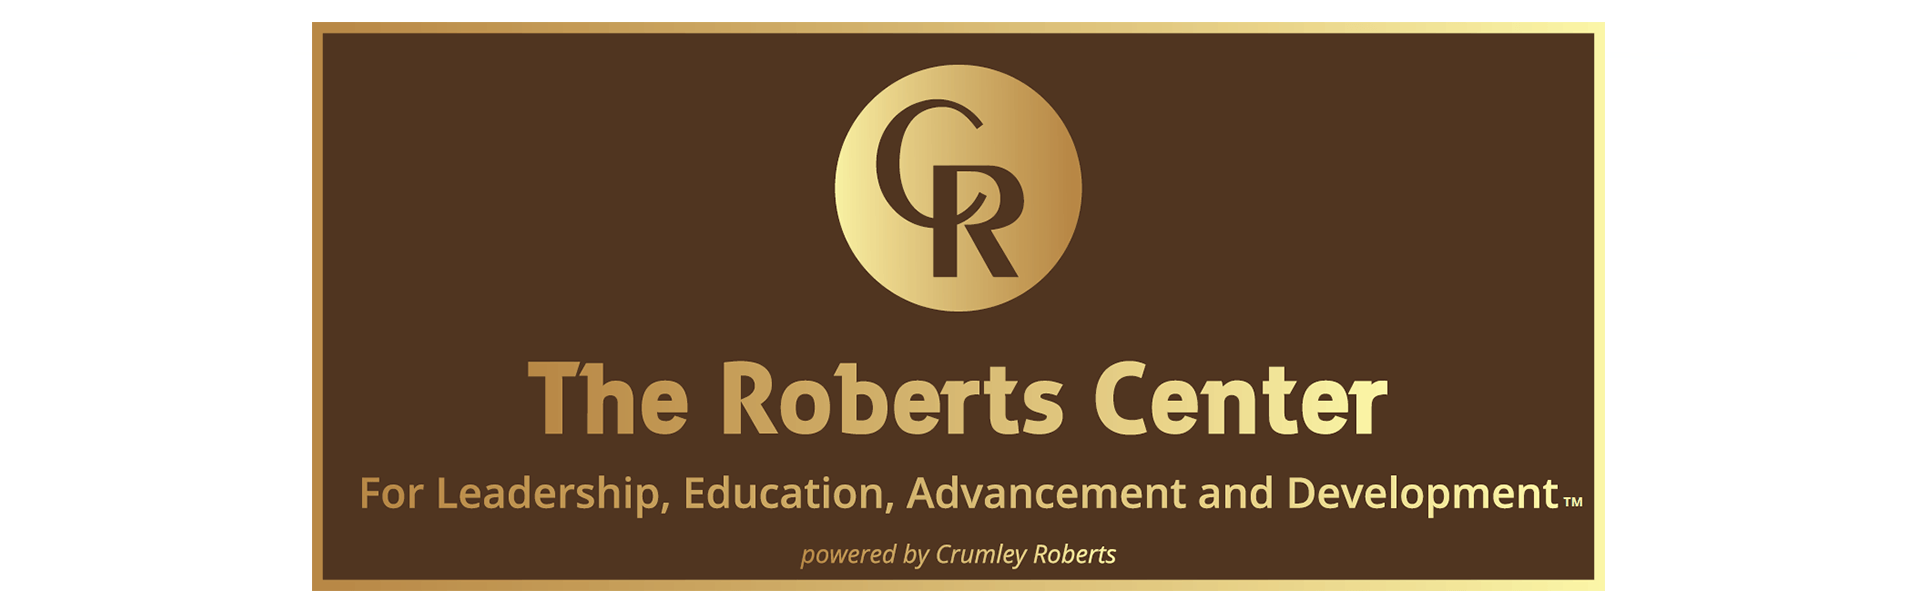 The Roberts Center For Leadership, Education, Advancement and Development